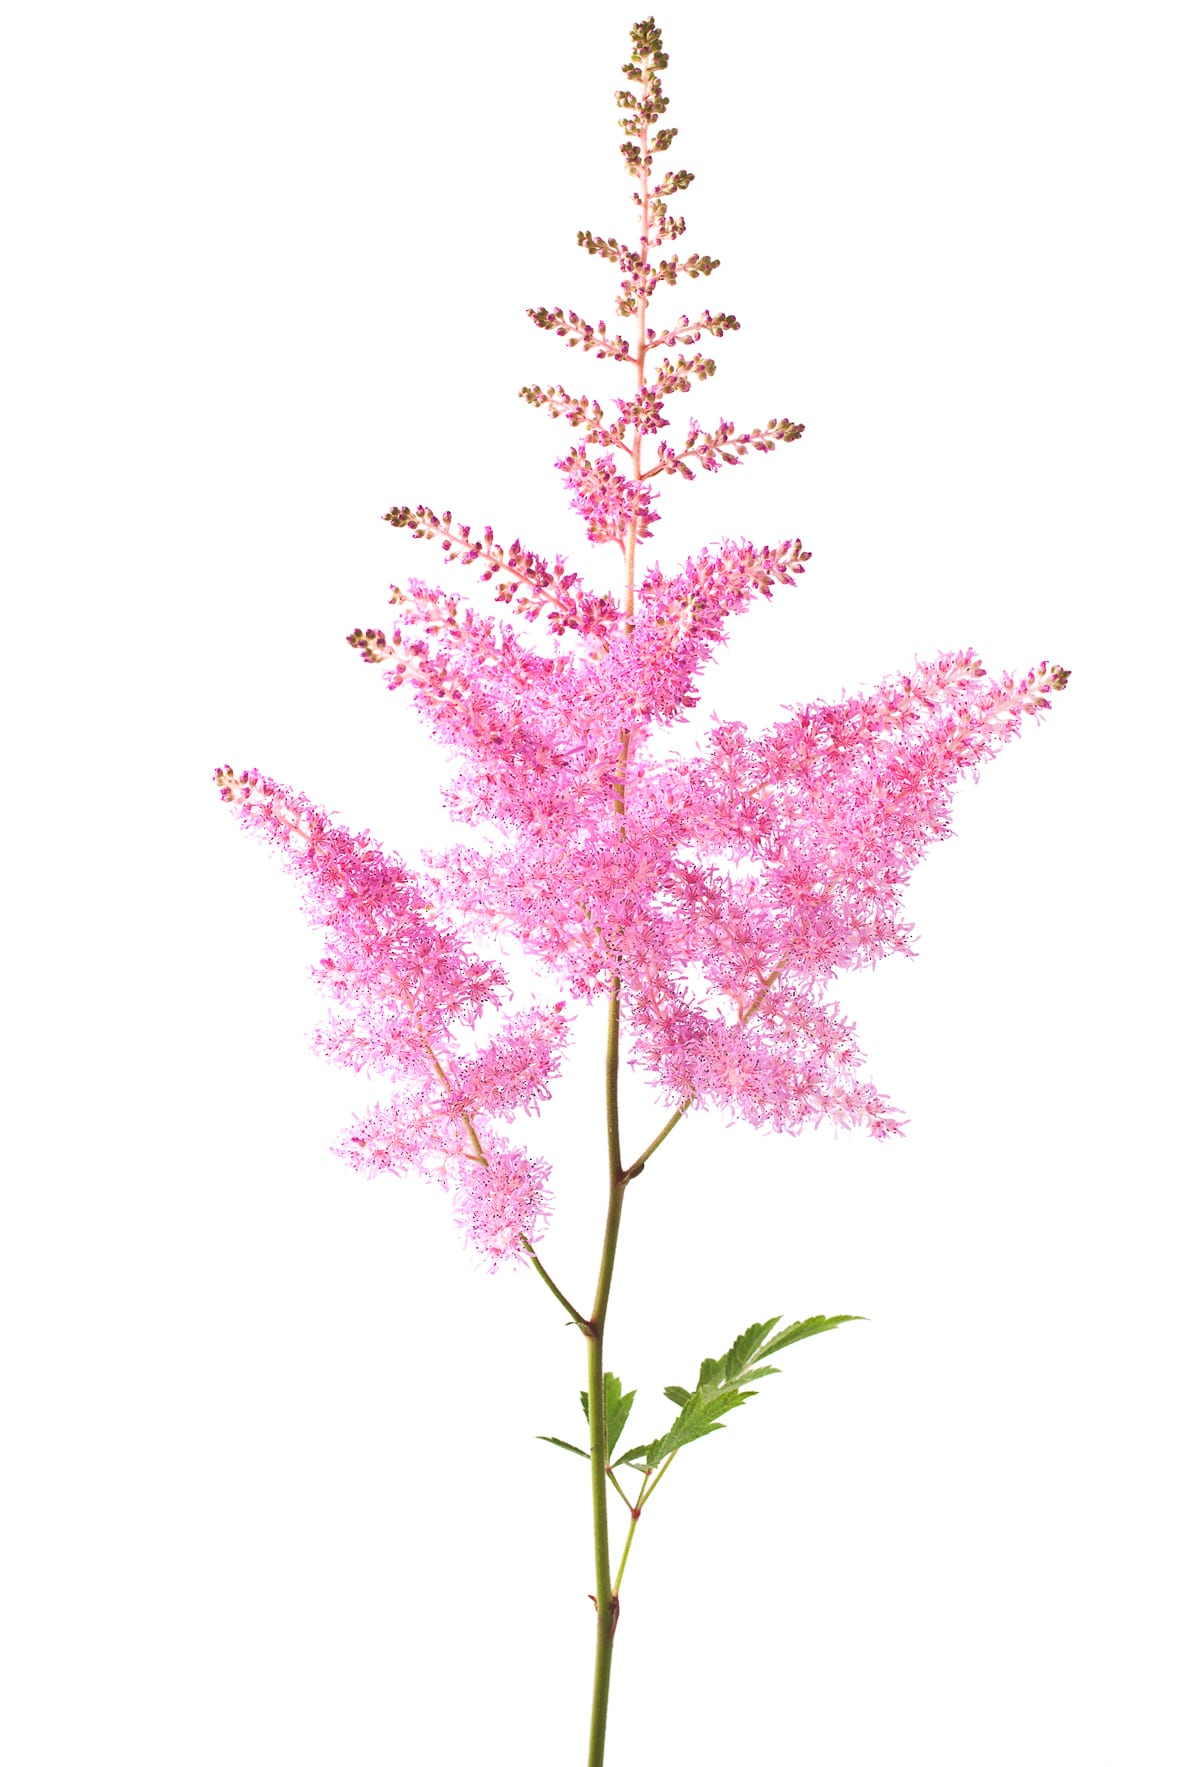 A bright pink wispy sprig of Astilbe flower against a bright white background